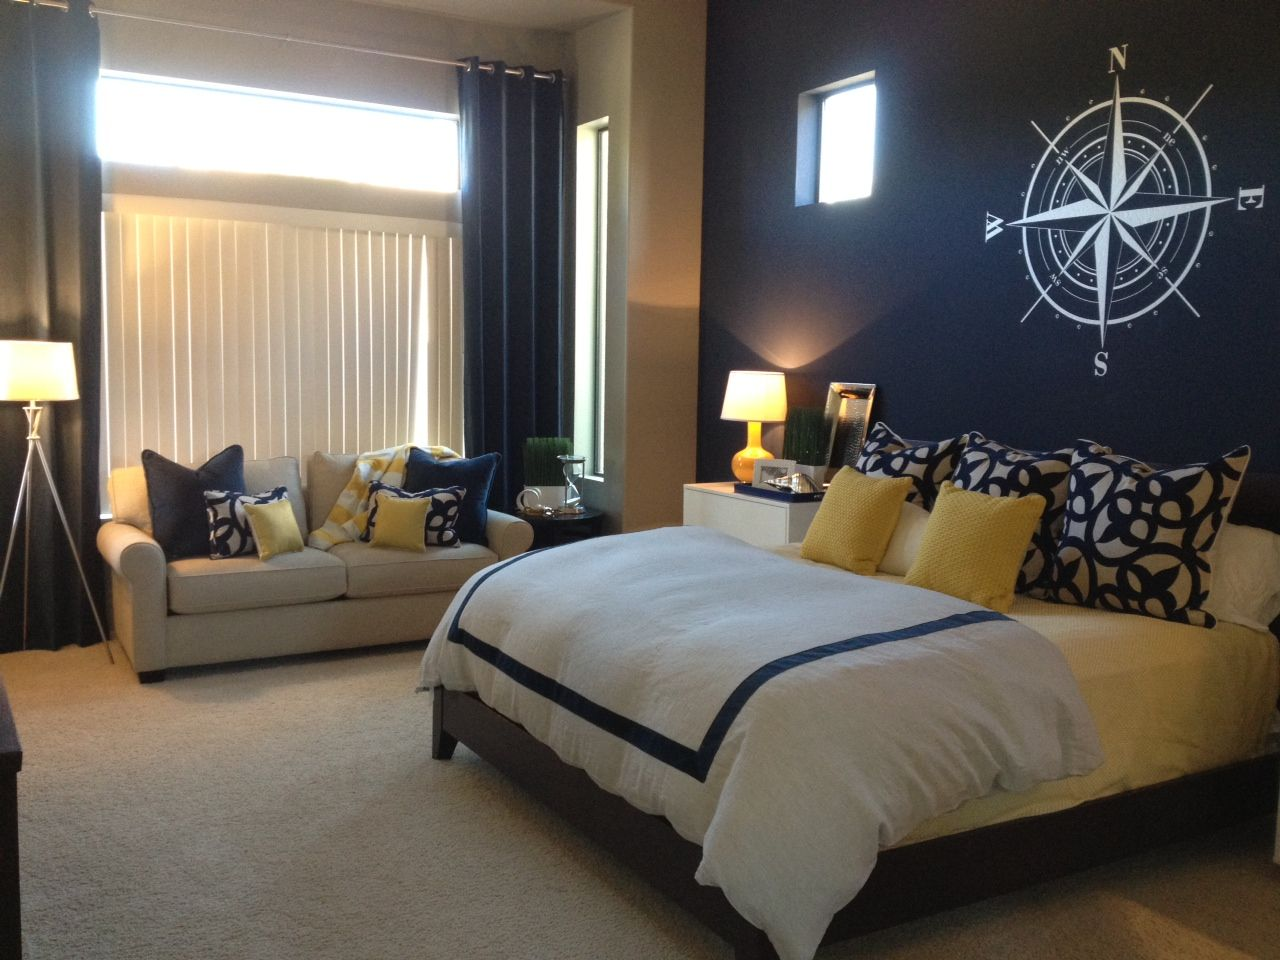 Bedroom Nautical Bedroom Decor The Magnificent Rooms That Look Luxurious With Nautical Decor